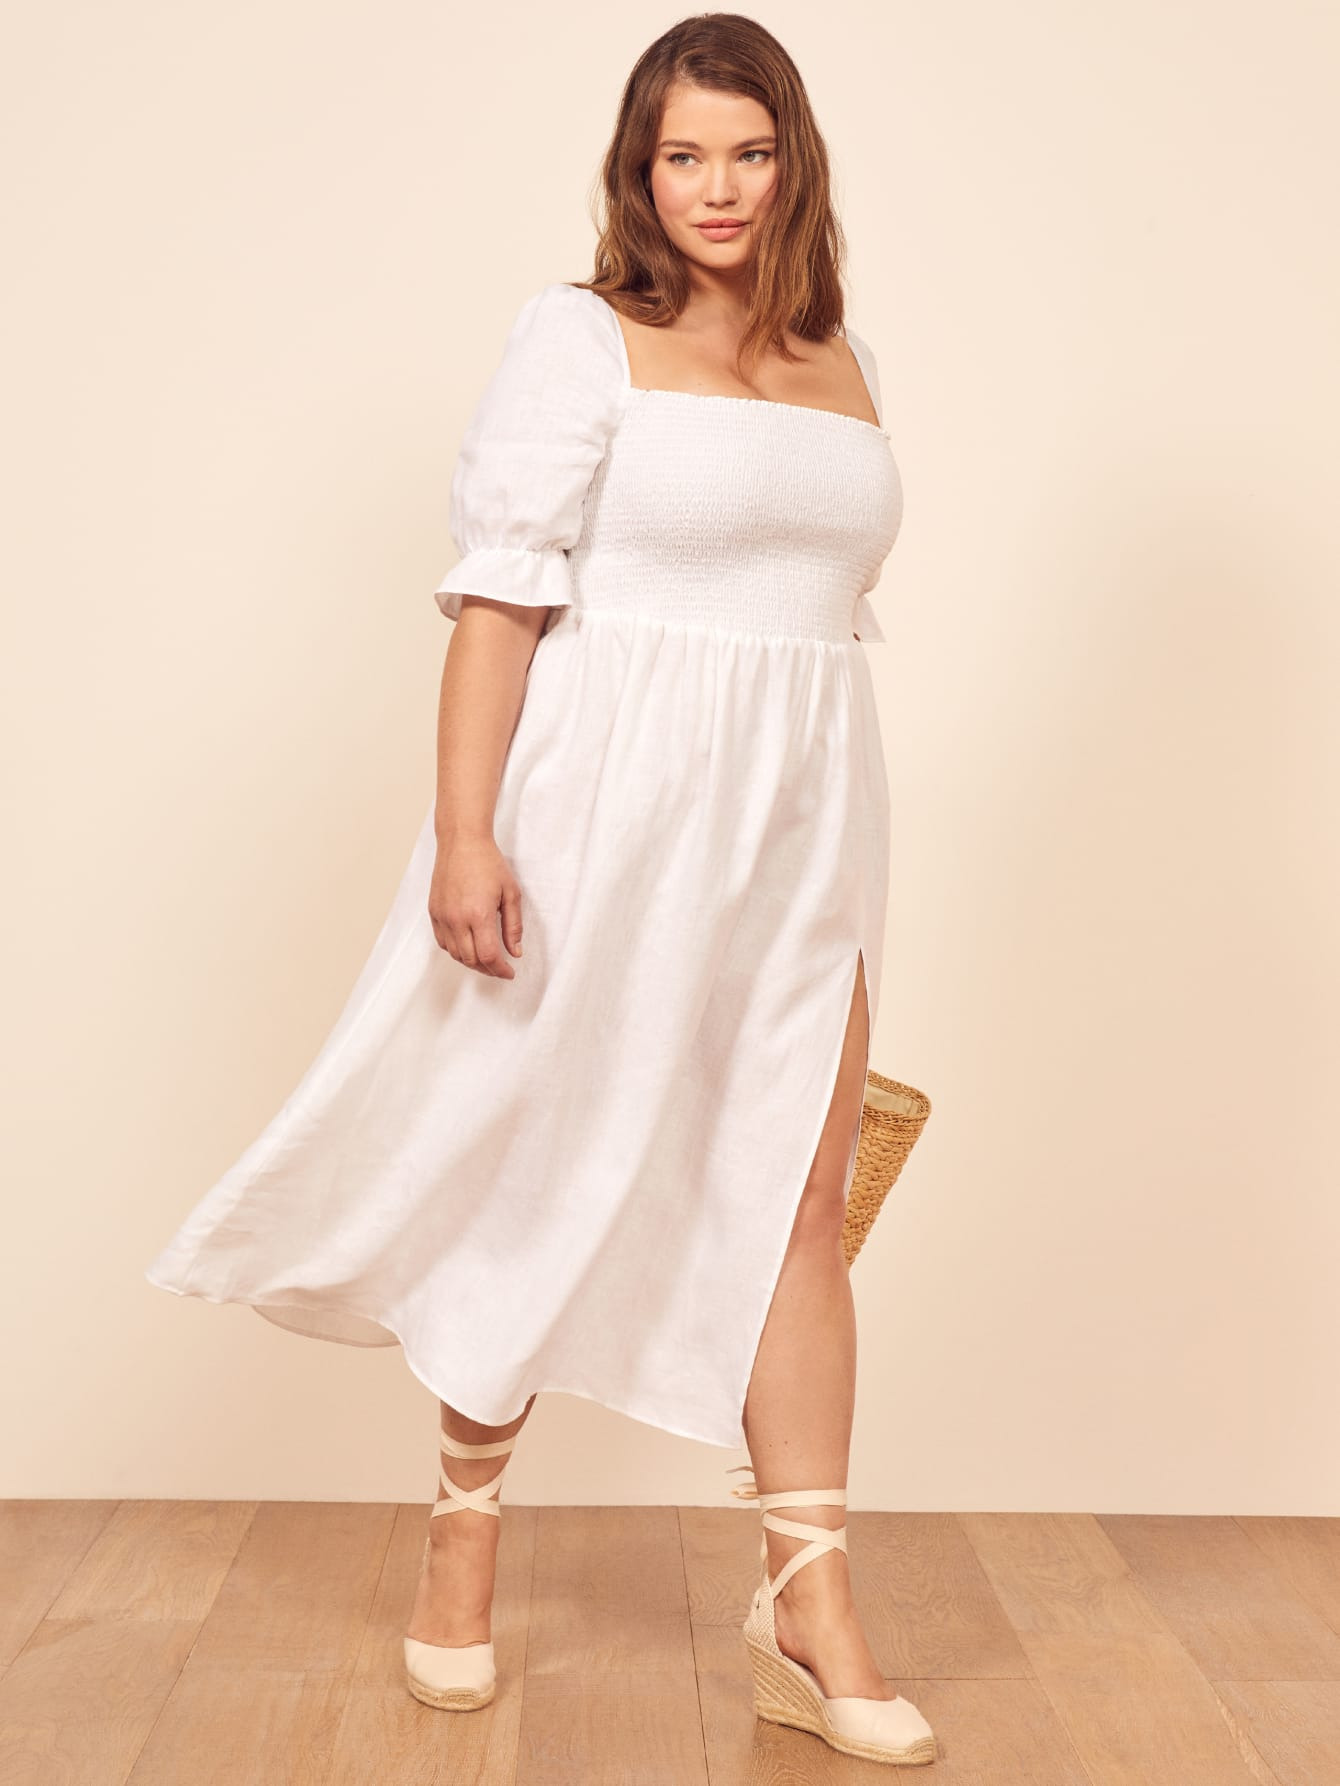 273127c64a Reformation Plus Size Clothing Relaunch Spring 2019